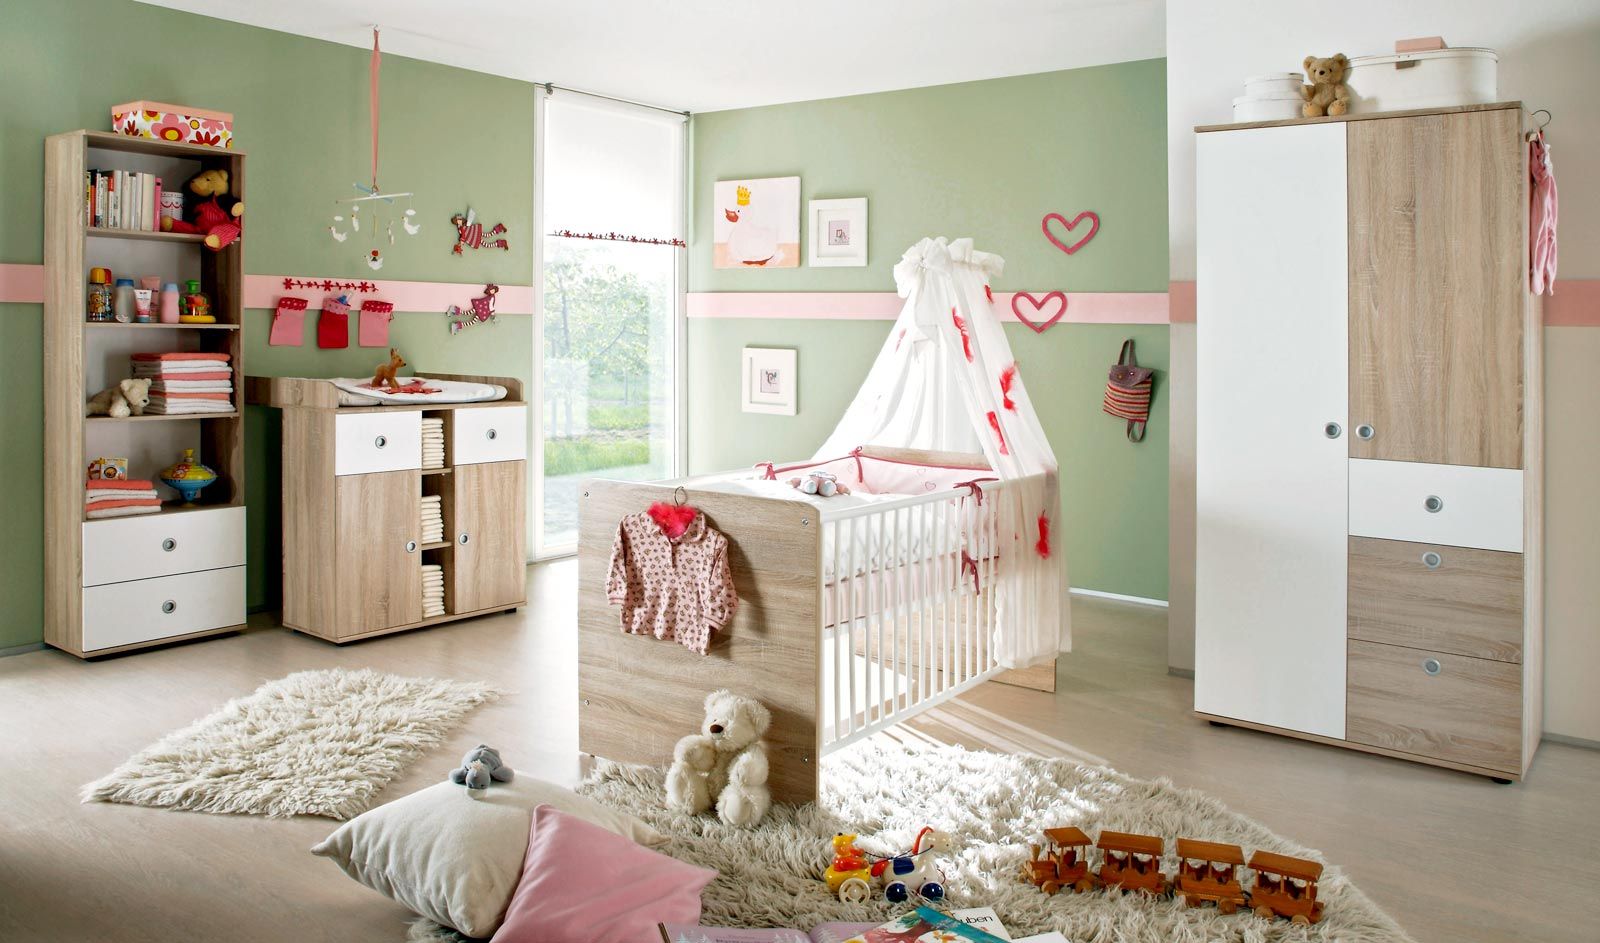 babyzimmer komplettset kinderzimmer komplett set babym bel wiki 3 eiche sonoma ebay. Black Bedroom Furniture Sets. Home Design Ideas